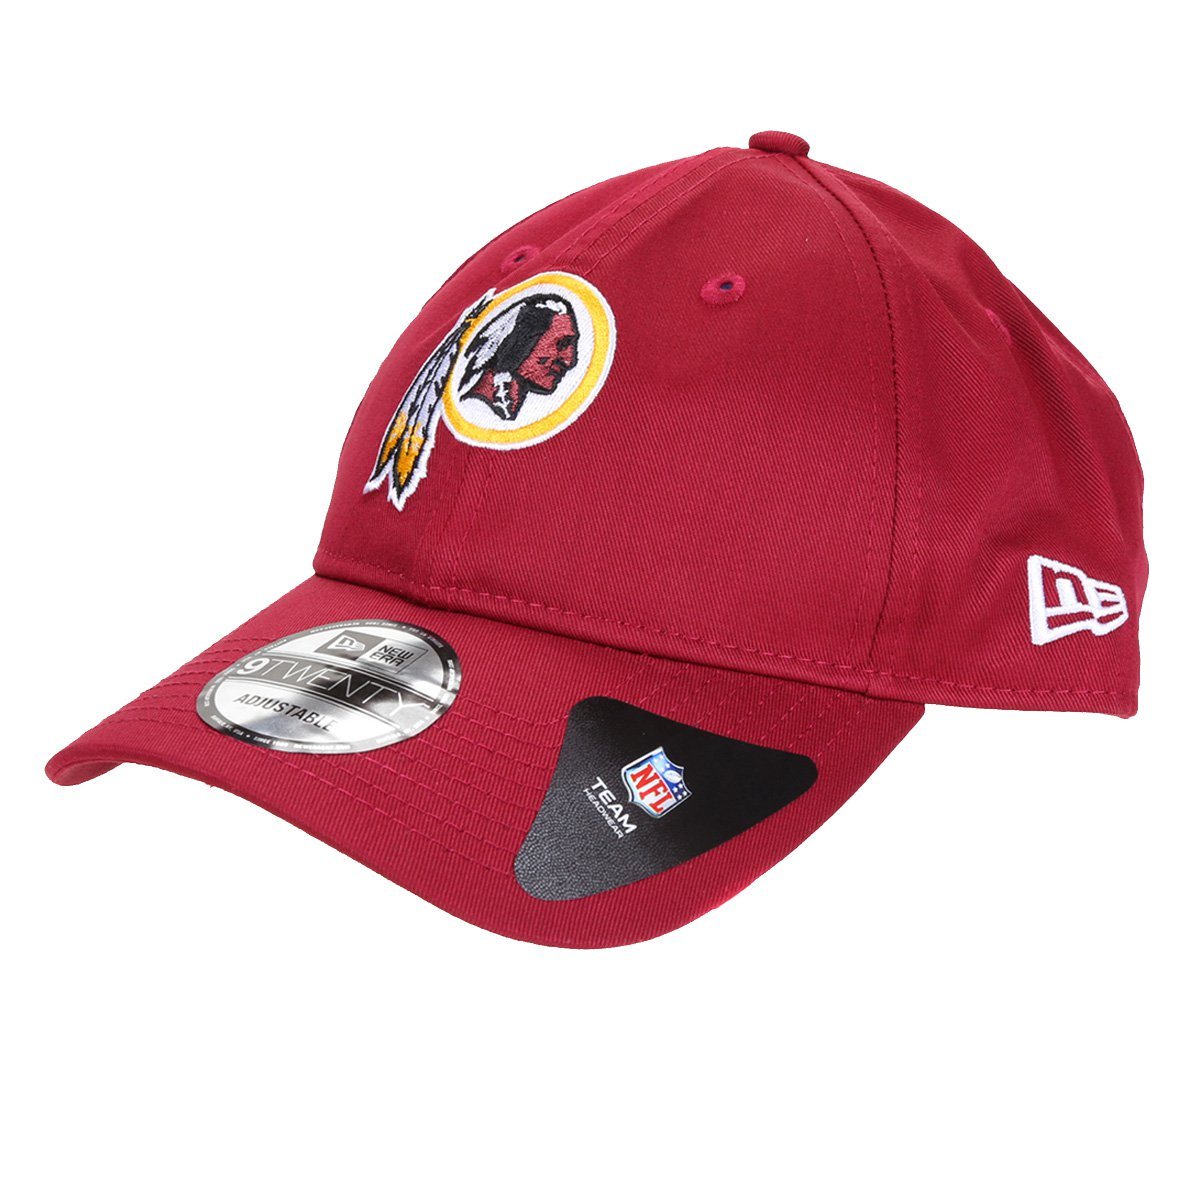 Boné New Era NFL Washington Football Team Aba Curva Strapback 920